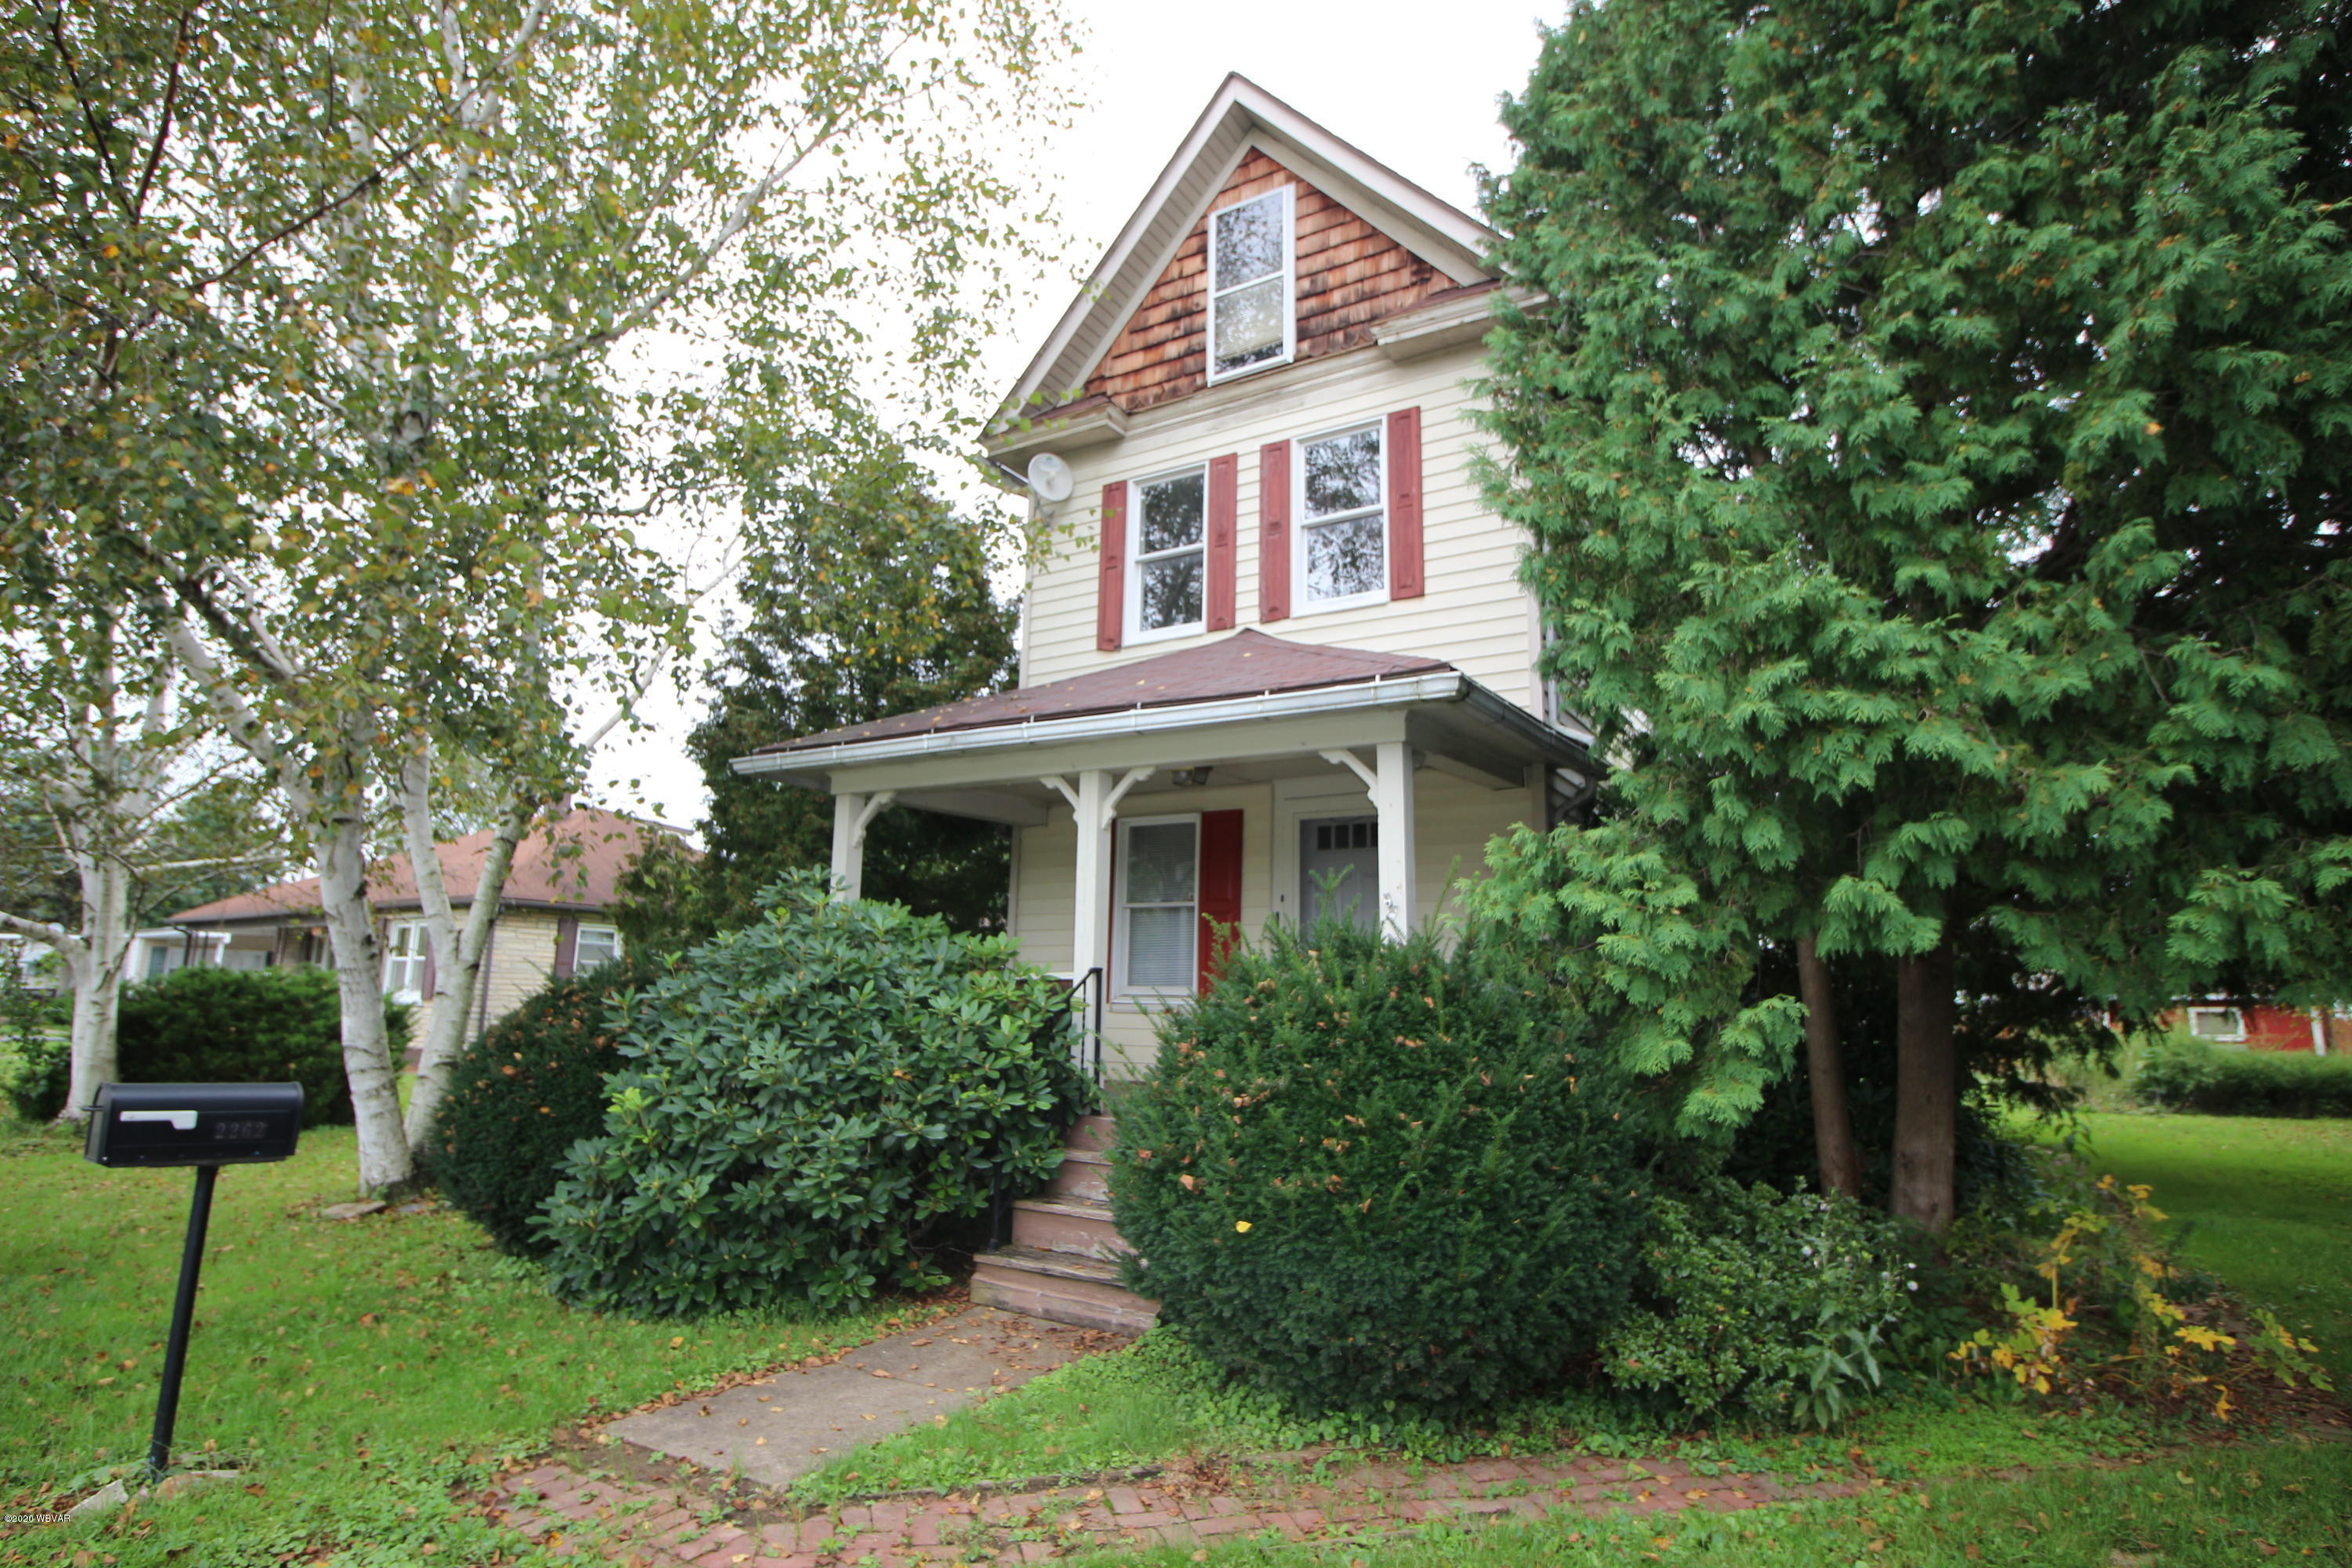 2262 CENTRAL AVENUE, Williamsport, PA 17701, 2 Bedrooms Bedrooms, ,1 BathroomBathrooms,Residential,For sale,CENTRAL,WB-91356